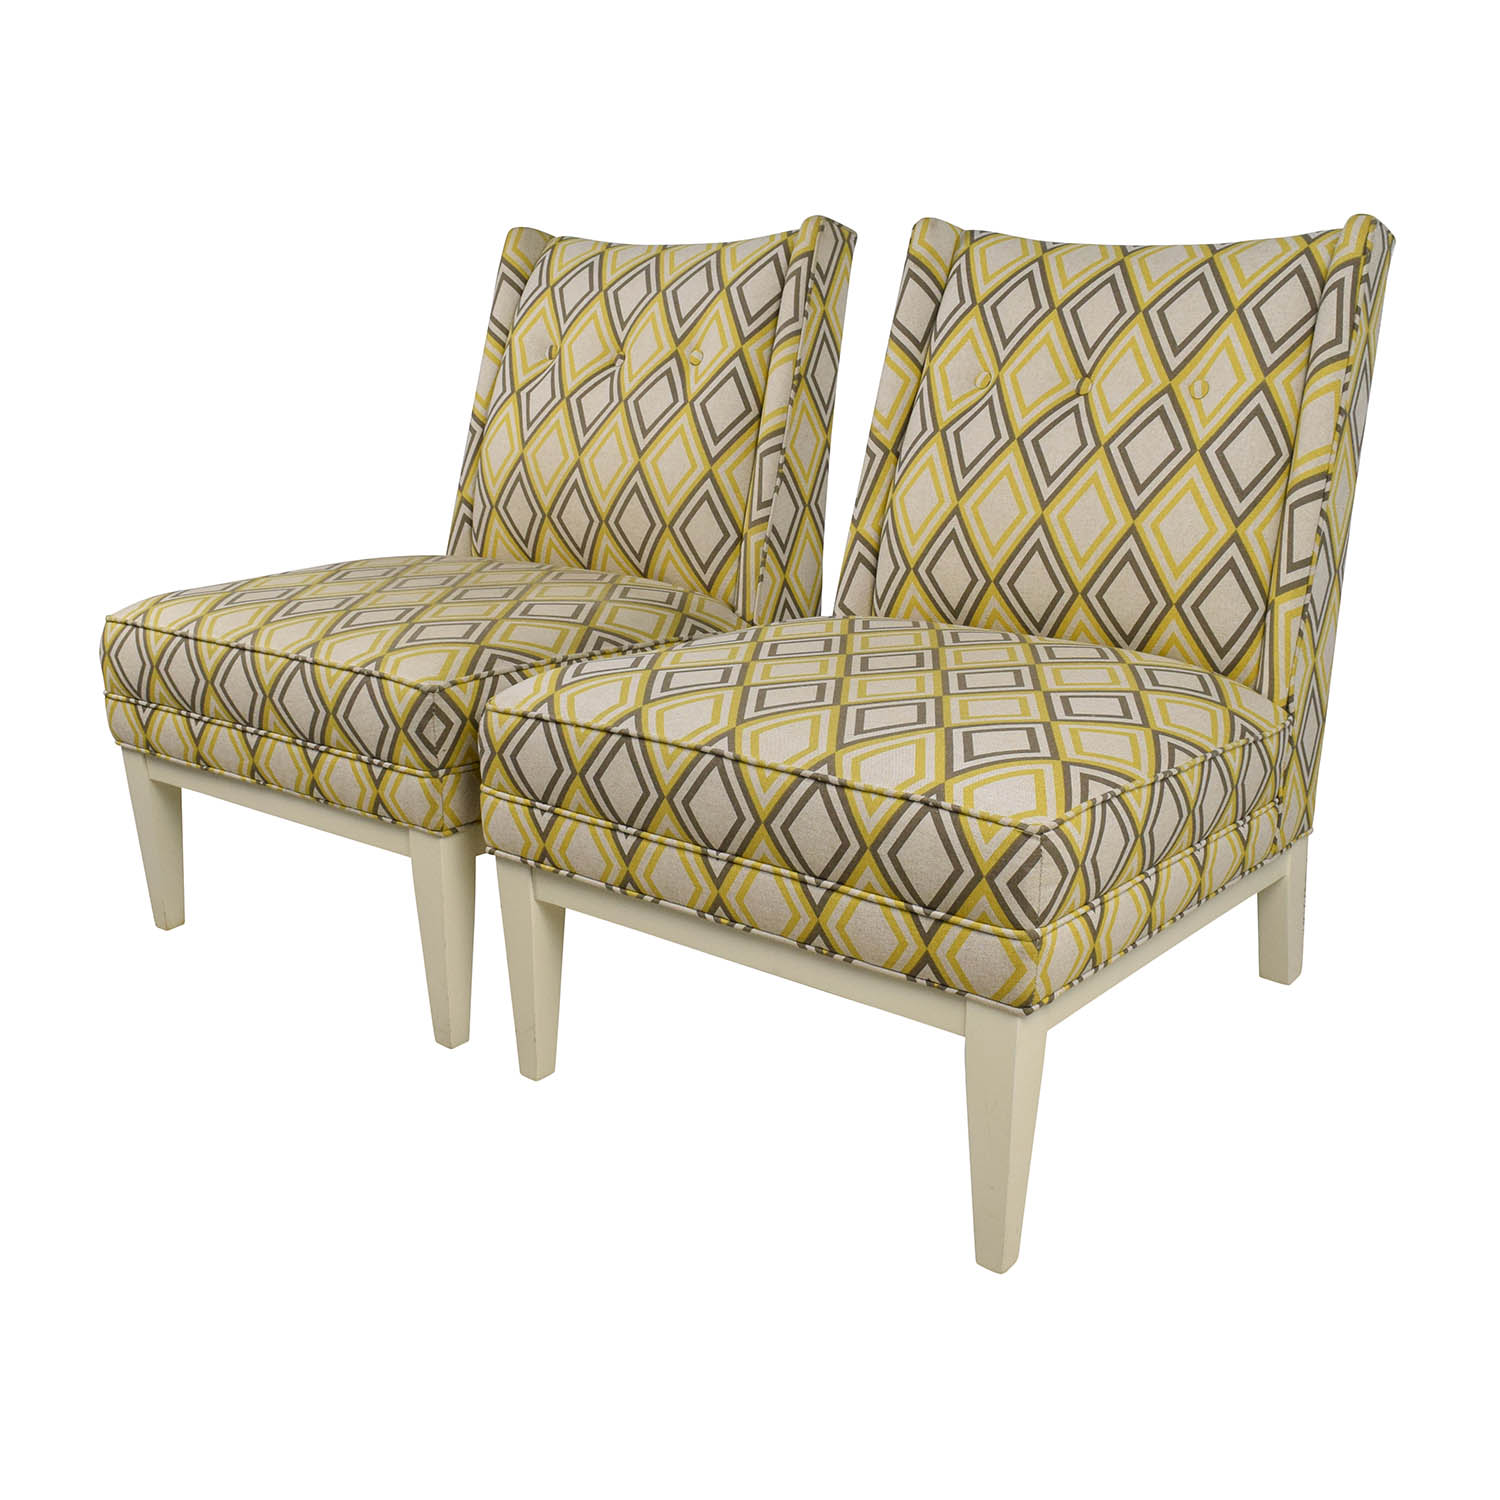 Strange 84 Off Jonathan Adler Jonathan Adler Morrow Yellow And Gray Chair Pair Chairs Machost Co Dining Chair Design Ideas Machostcouk